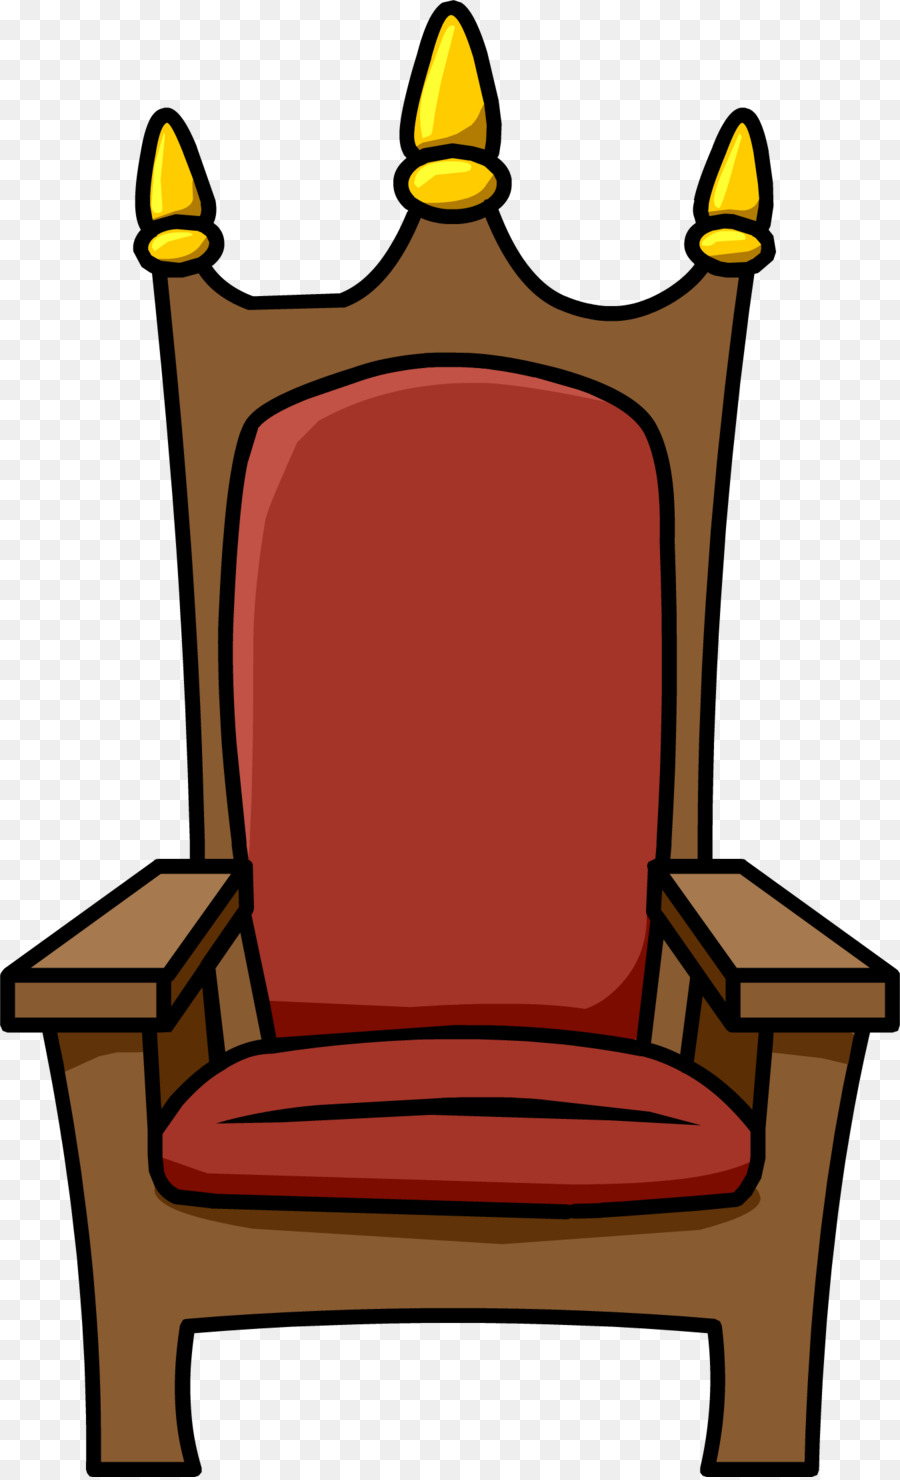 png freeuse stock Chair png download free. King throne clipart